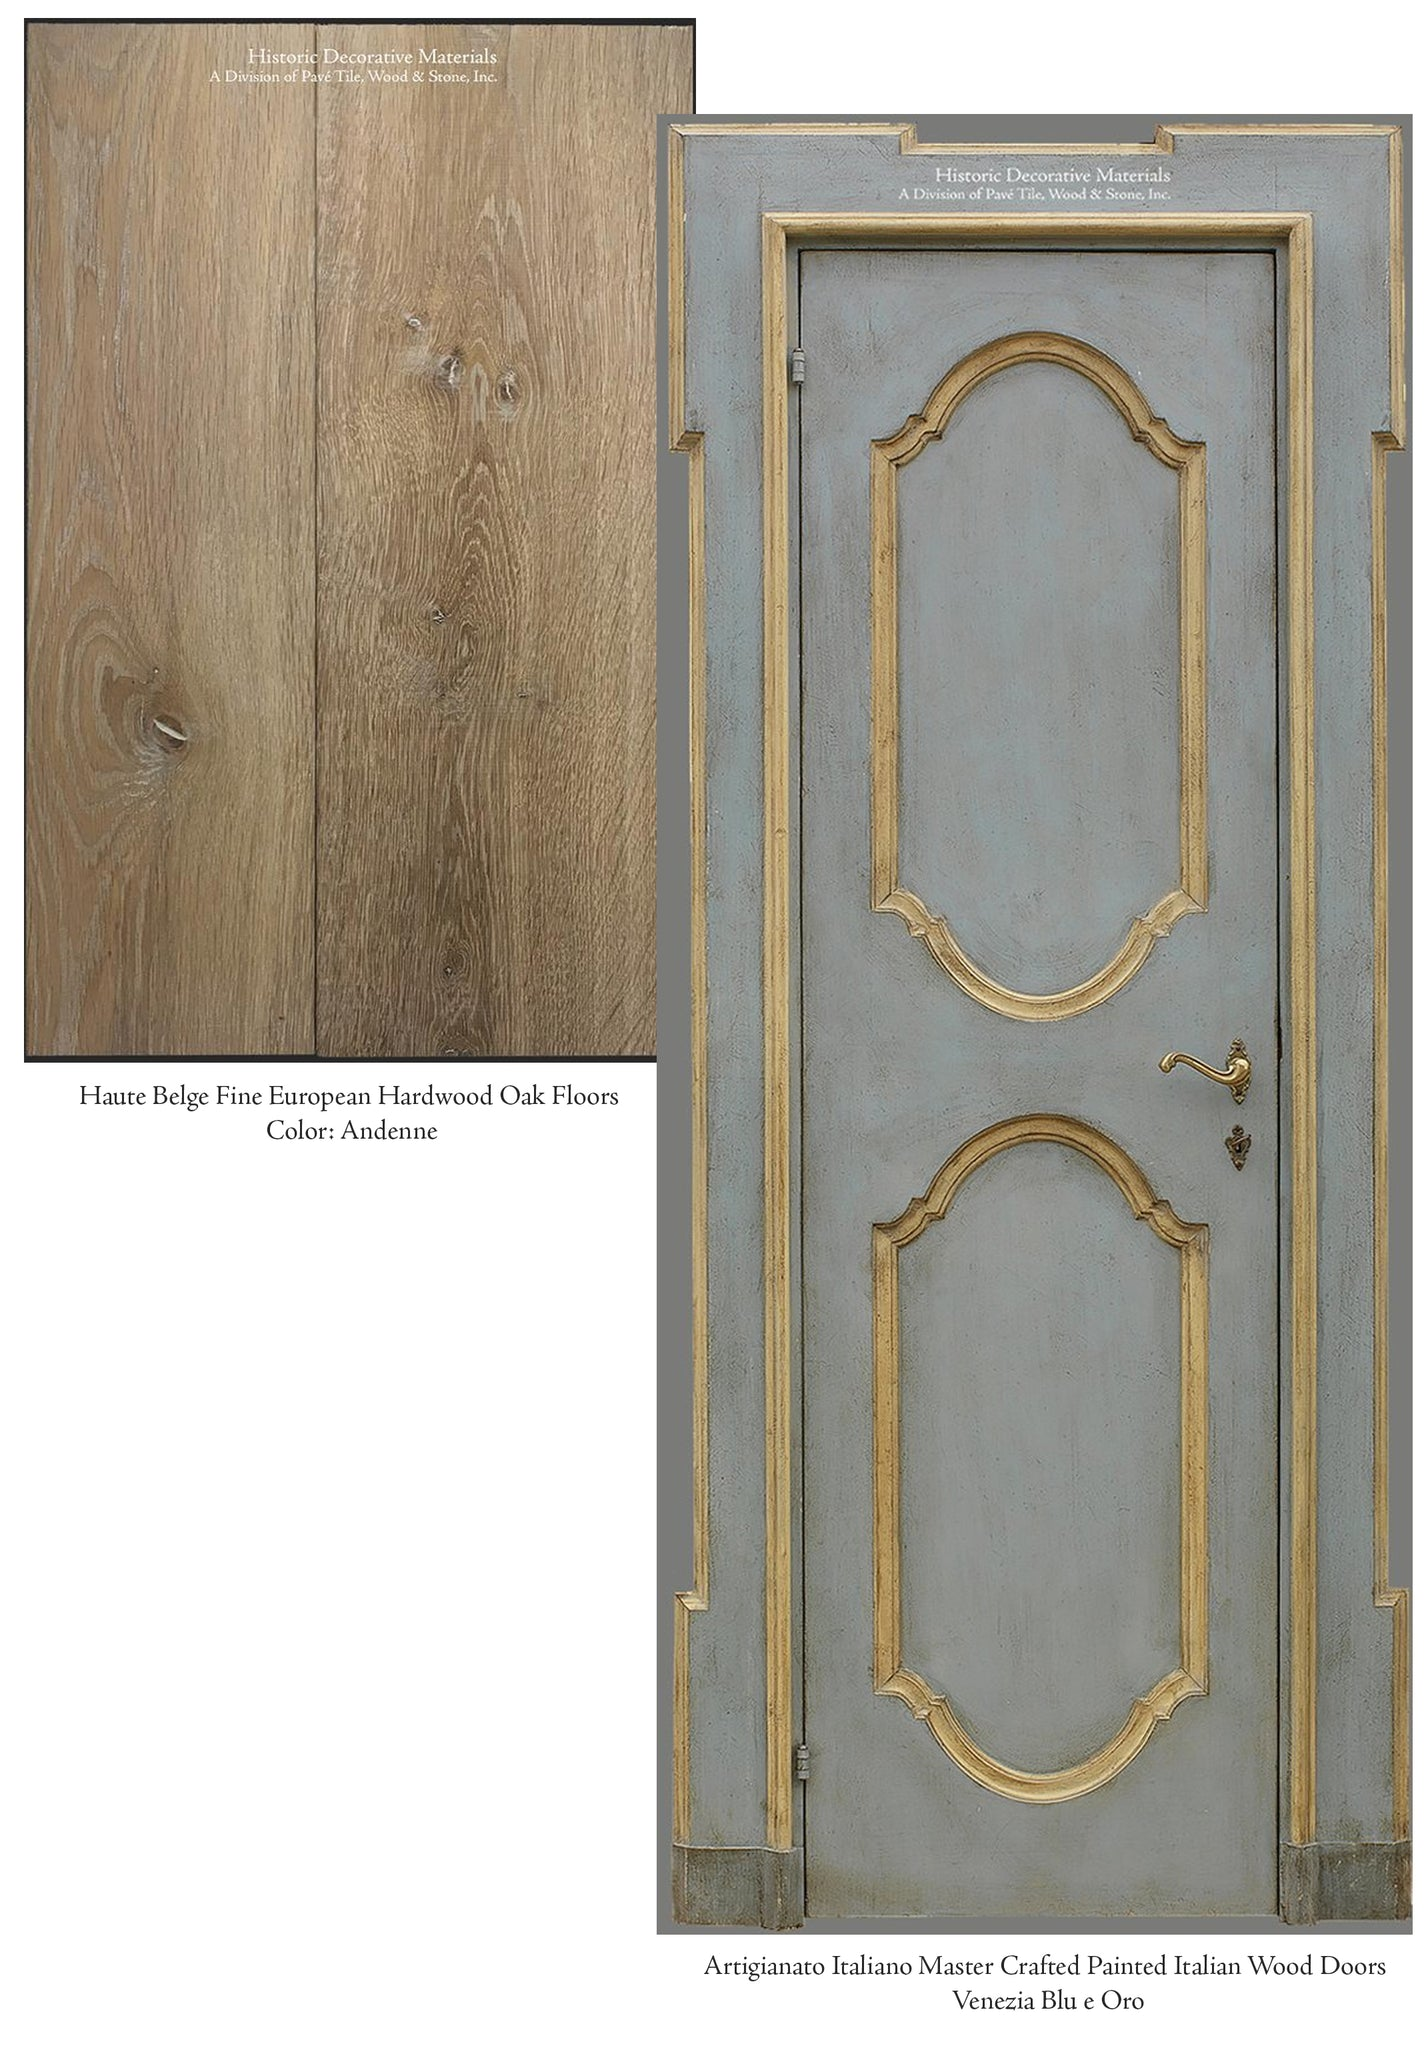 Haute Belge European Hardwood Oak Floors and Hand Painted Italian Doors